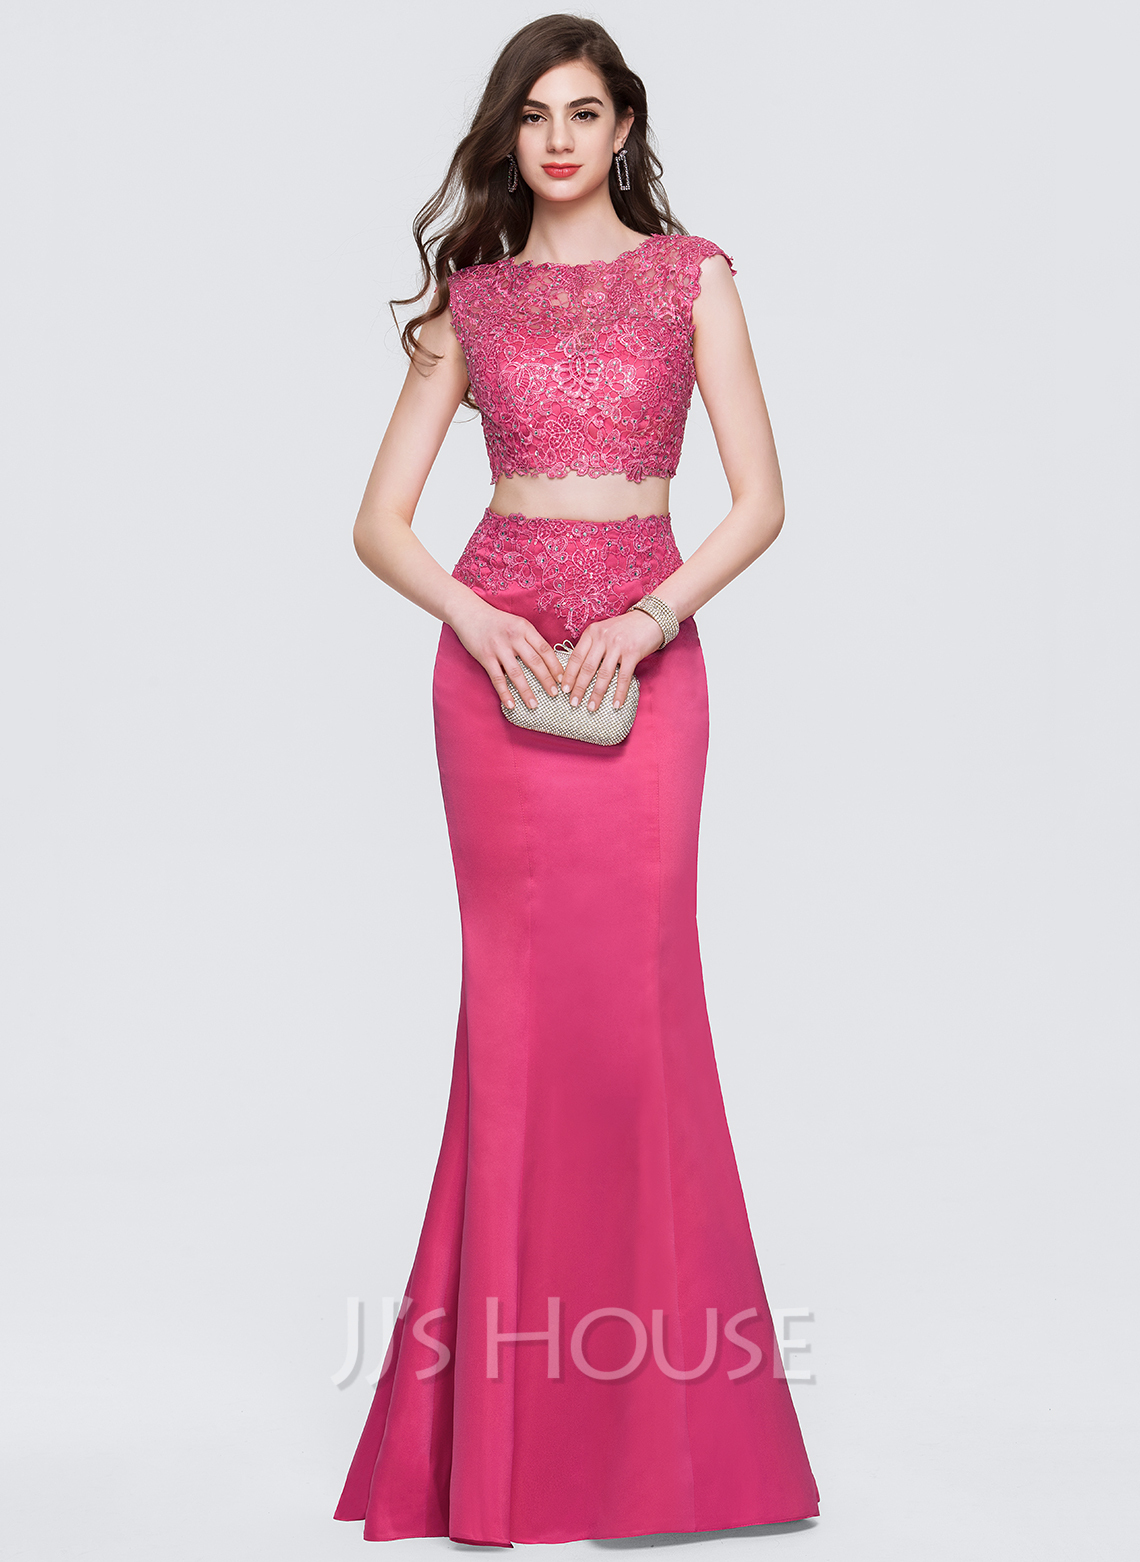 caccc86d5 Trumpet Mermaid Scoop Neck Floor-Length Satin Prom Dresses With Beading  Sequins. Loading zoom